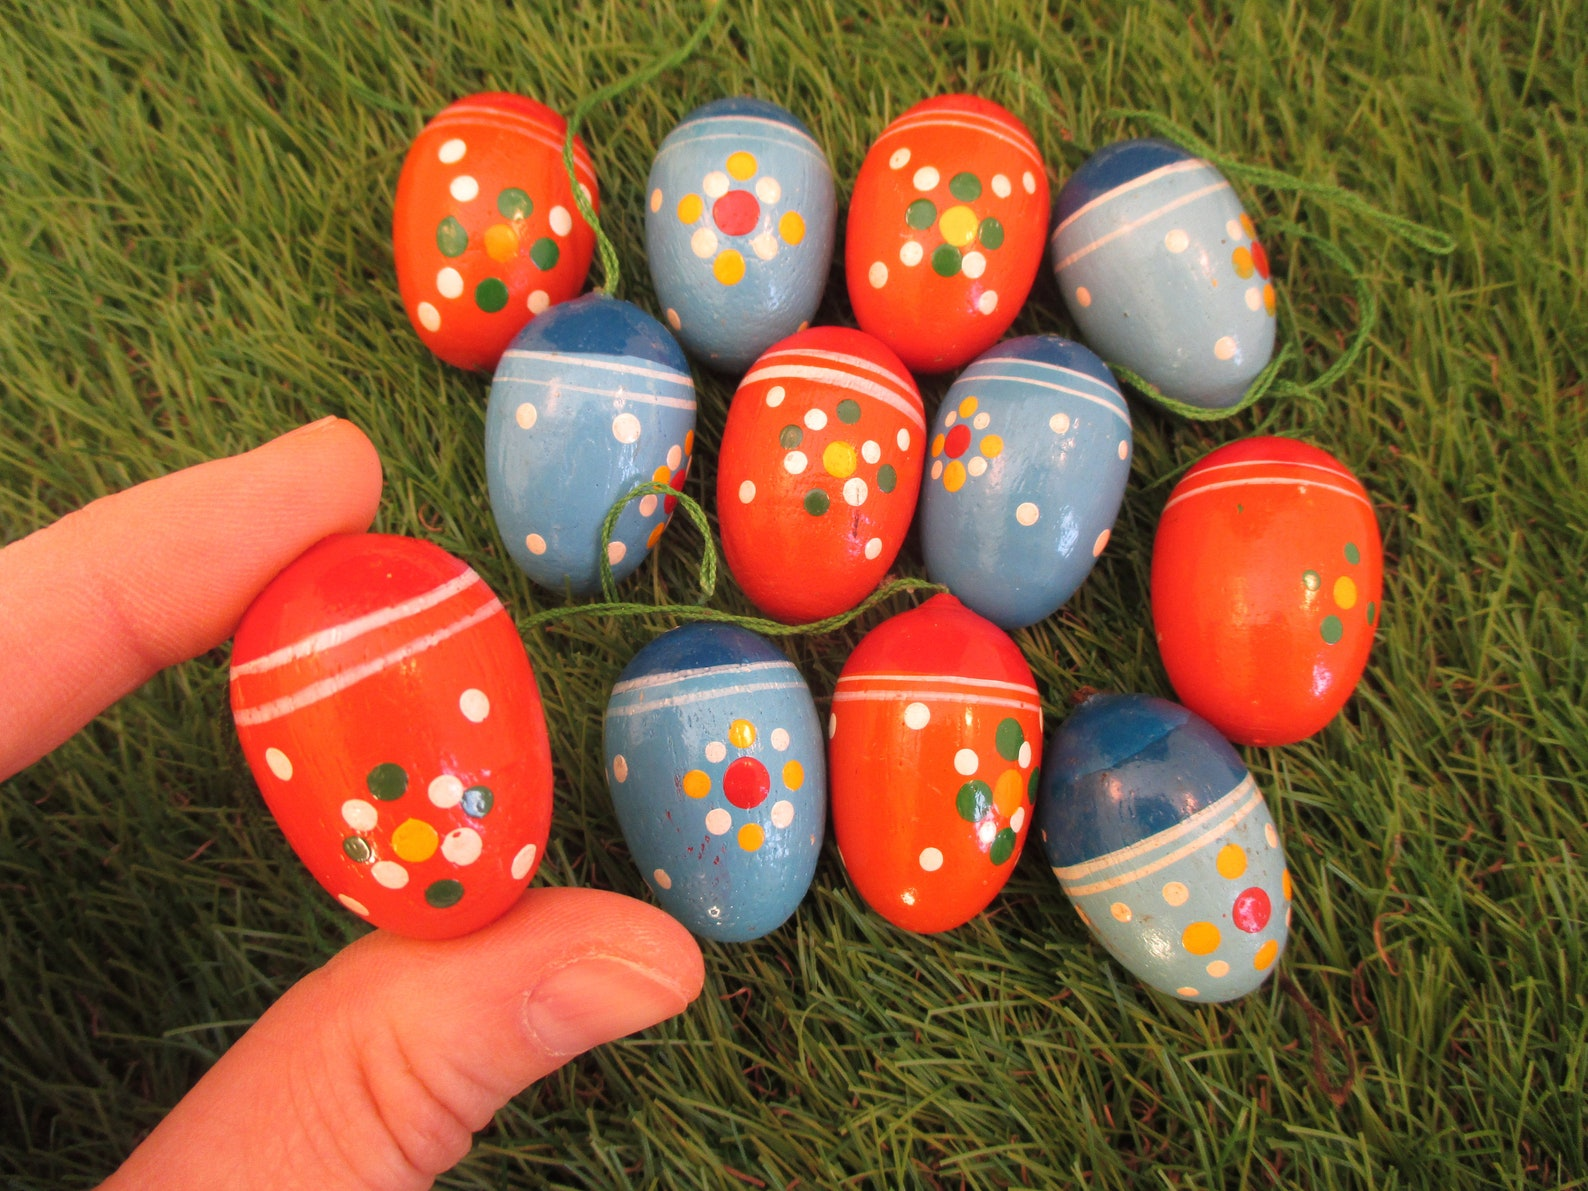 Erzgebirge Easter Eggs 12 Red & Blue Wood Hand Painted Hanging Egg Ornaments Handmade Spring Decor Germany Easter Collectible Egg Set Wooden